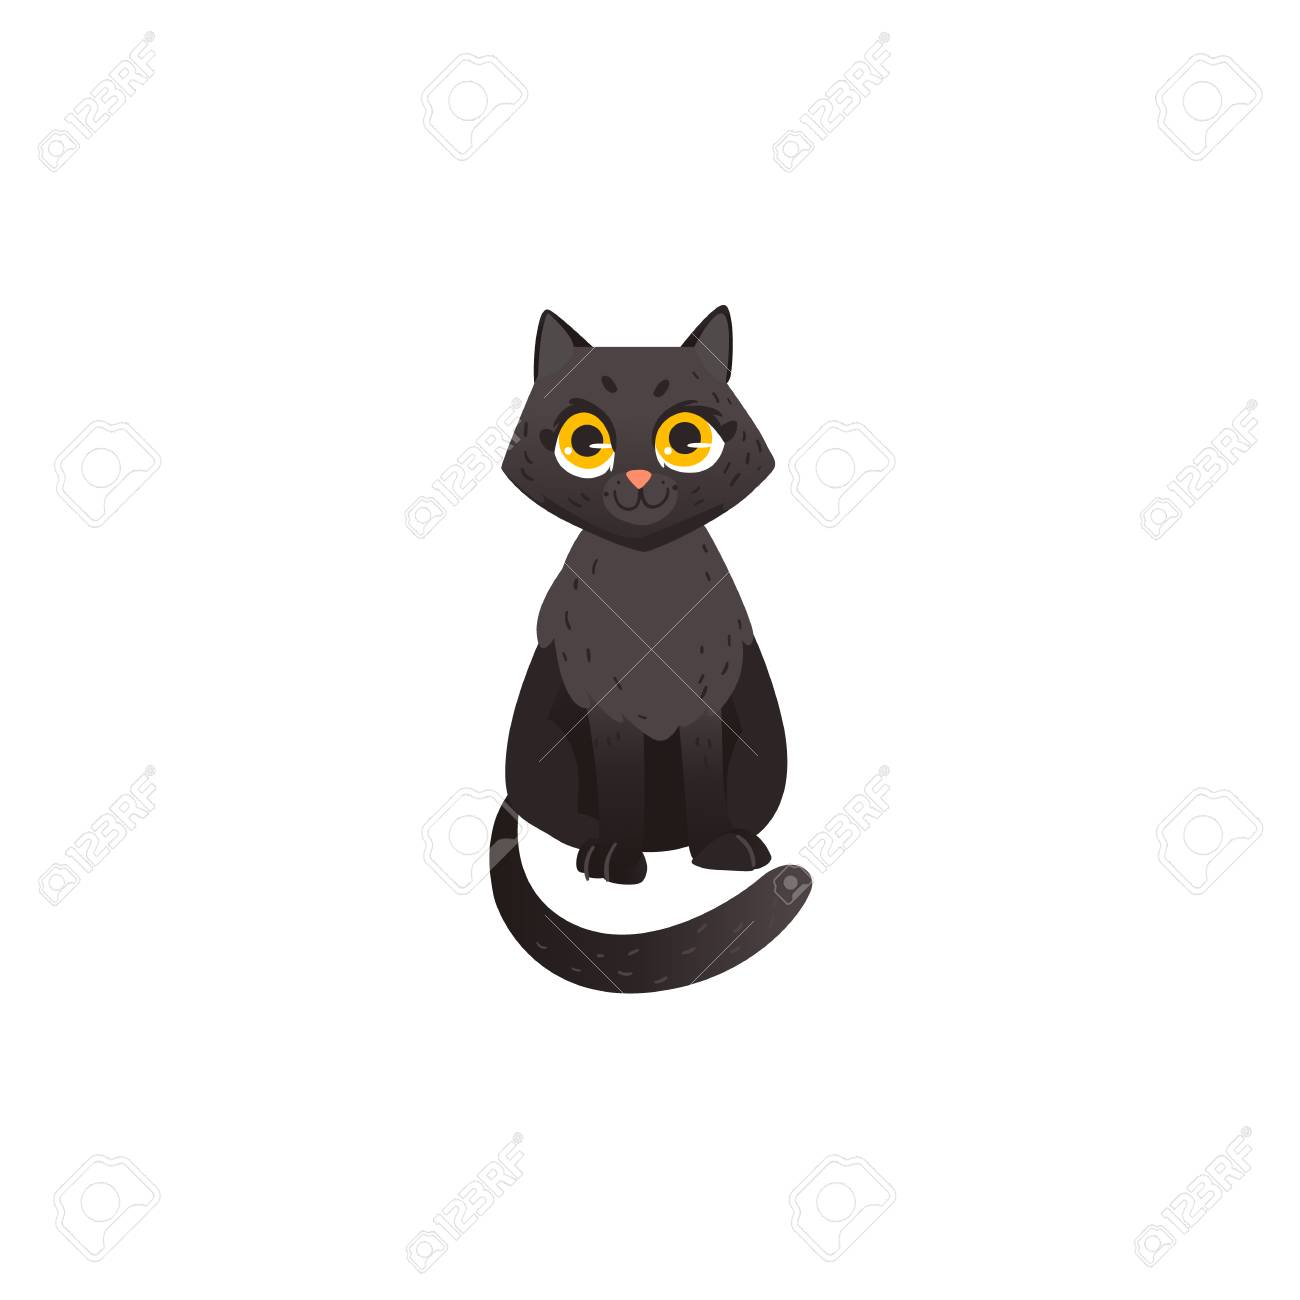 Image of: Kitten Cartoon Cute Black Cat Animal Sitting Front View Funny Hand Drawn Kitten Pet Quora Cartoon Cute Black Cat Animal Sitting Front View Funny Hand